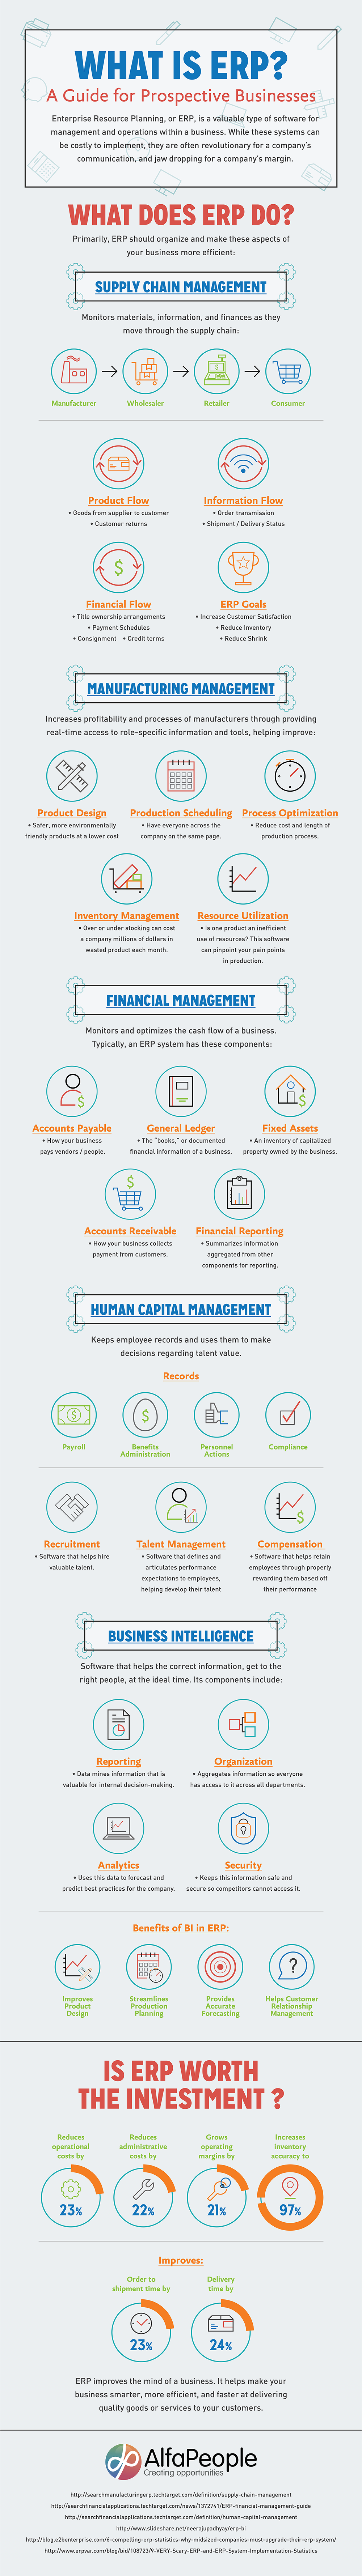 ERP Infographic from AlfaPeople